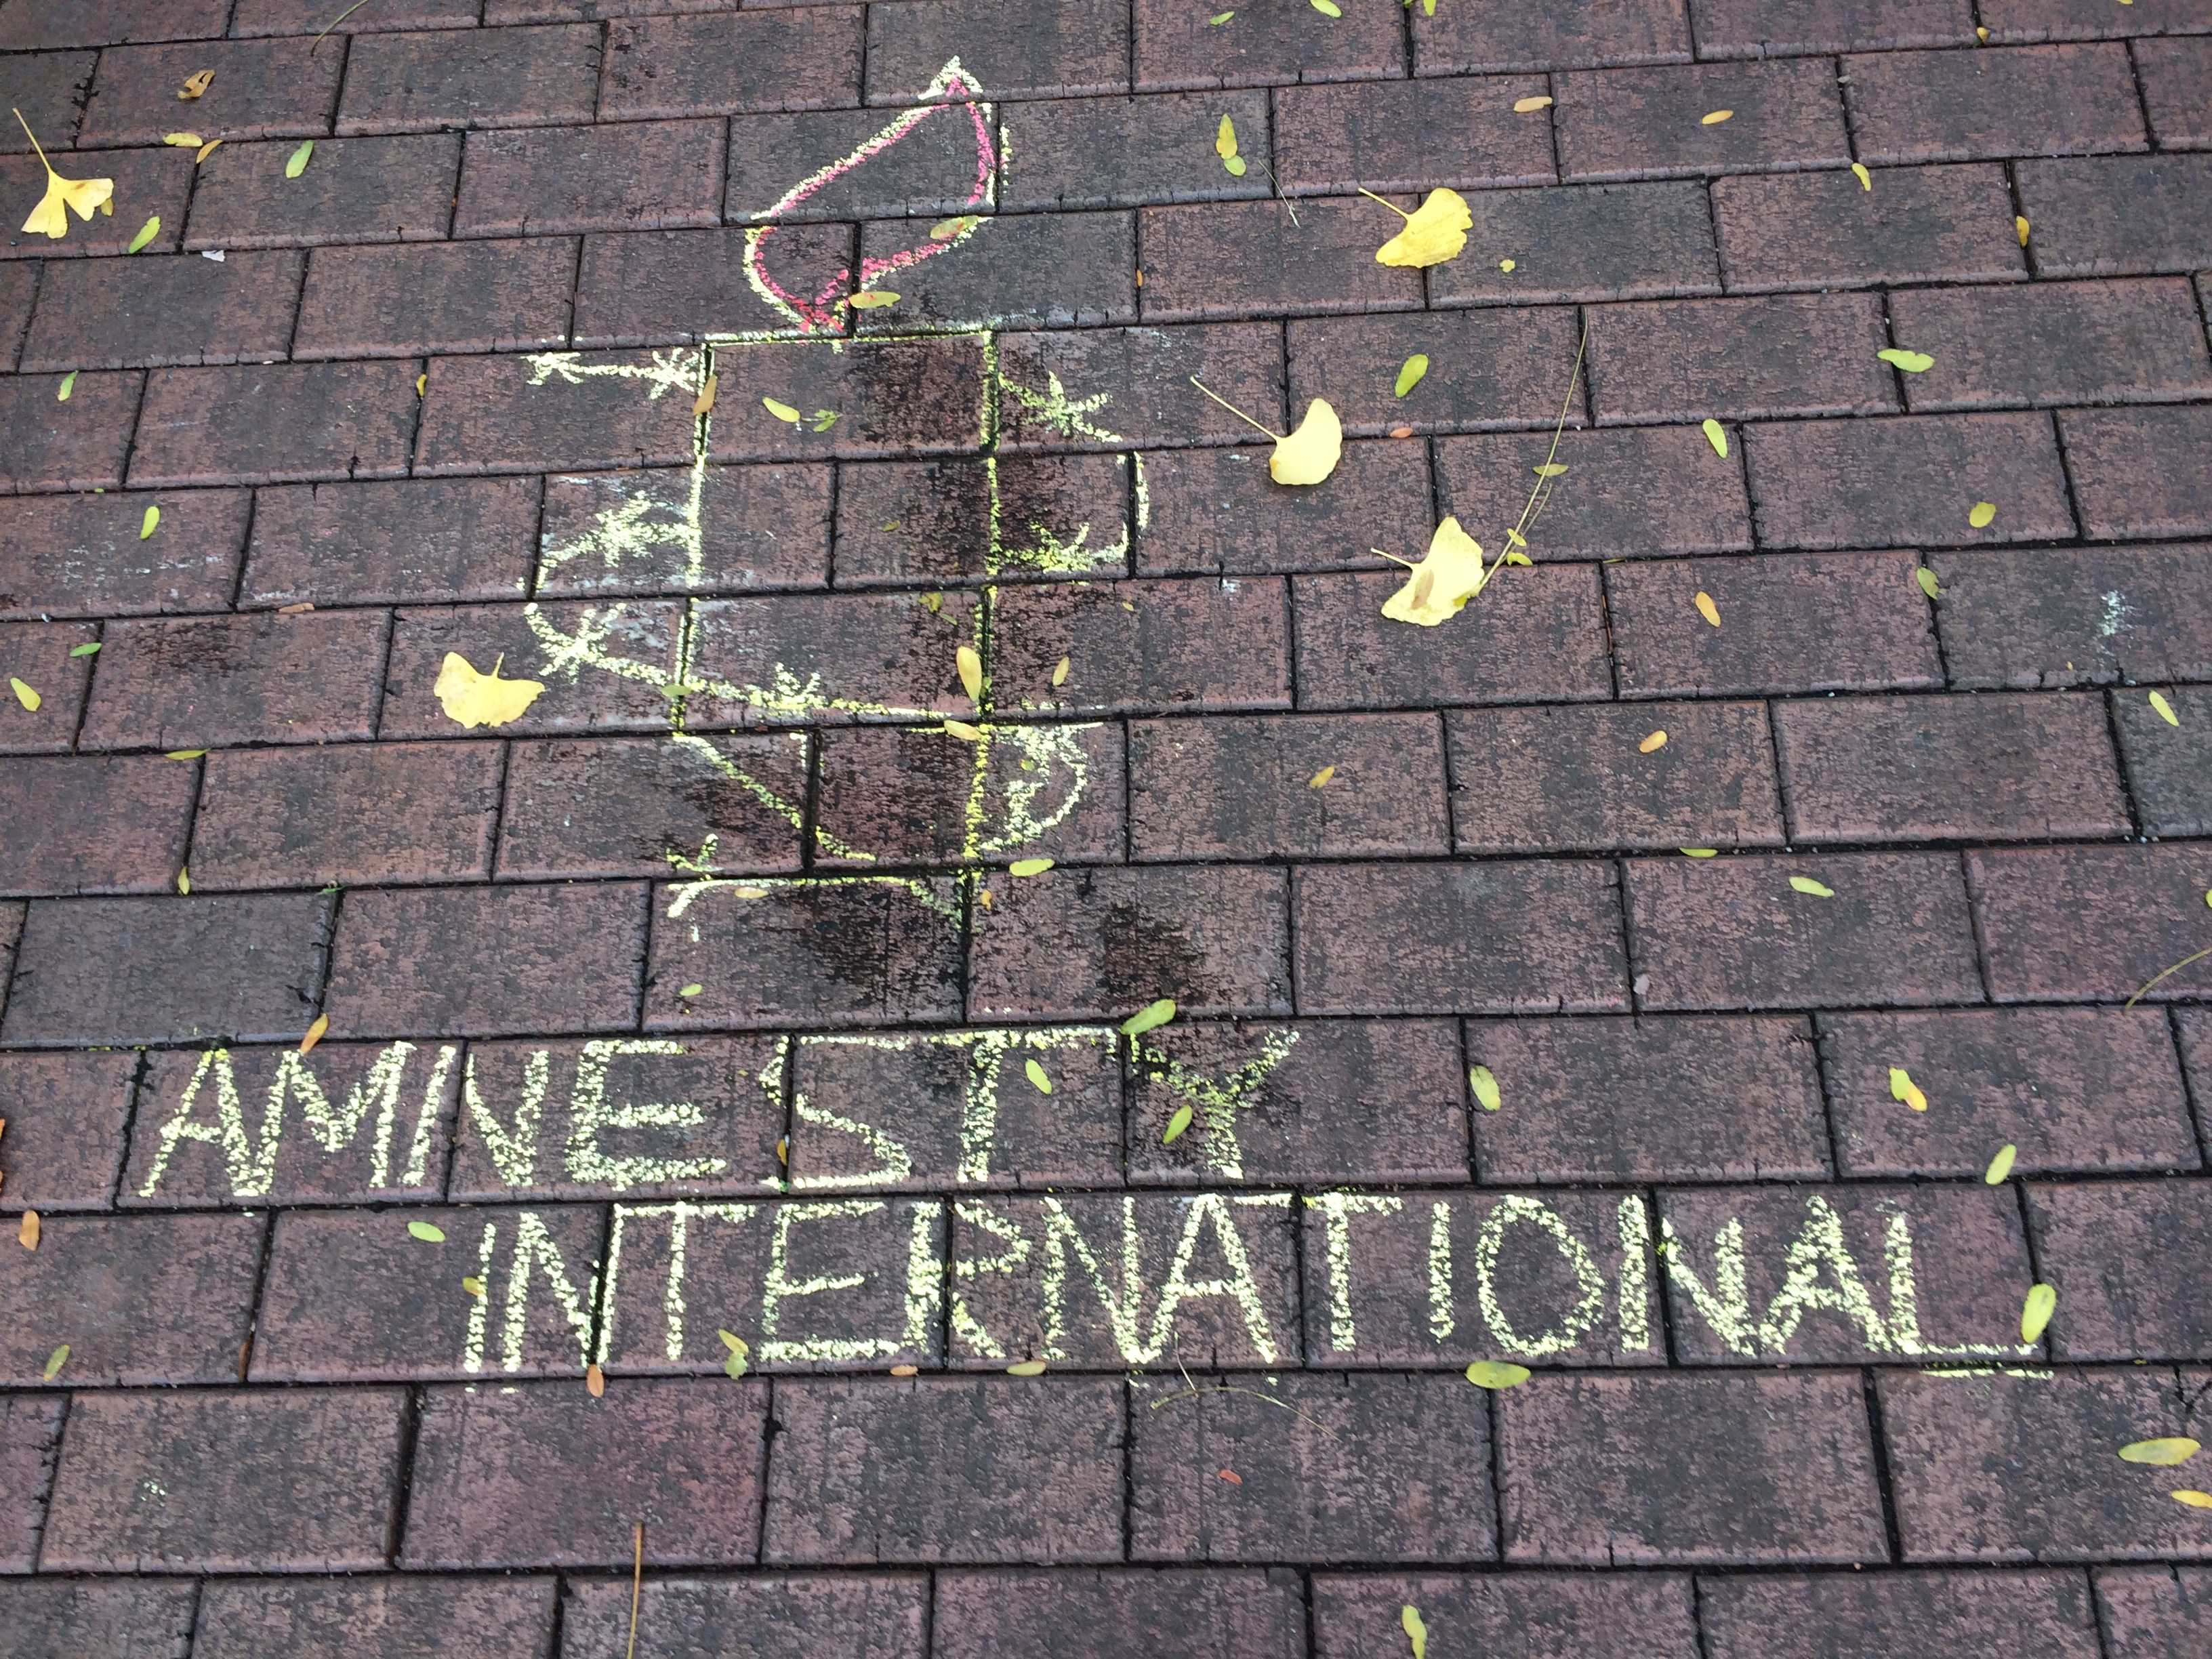 A chalk rendition of Amnesty International's logo, a burning candle, in the Courtyard. Photo by Maya Joshi.